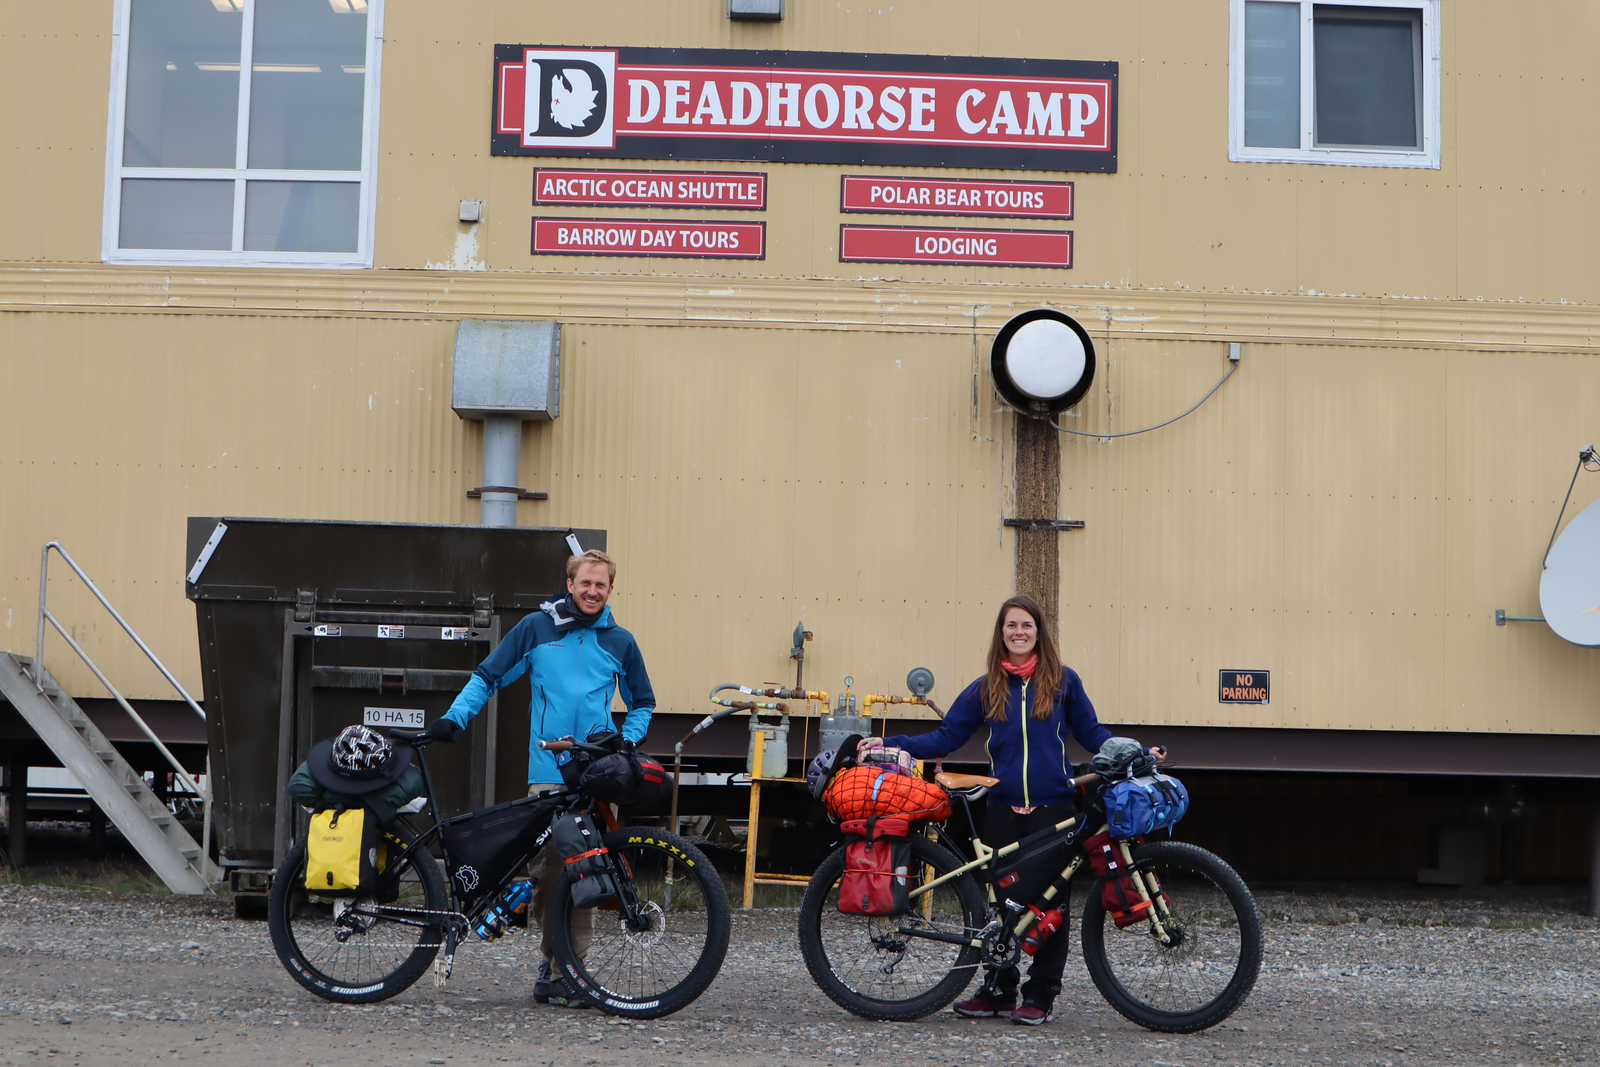 Deadhorse Camp